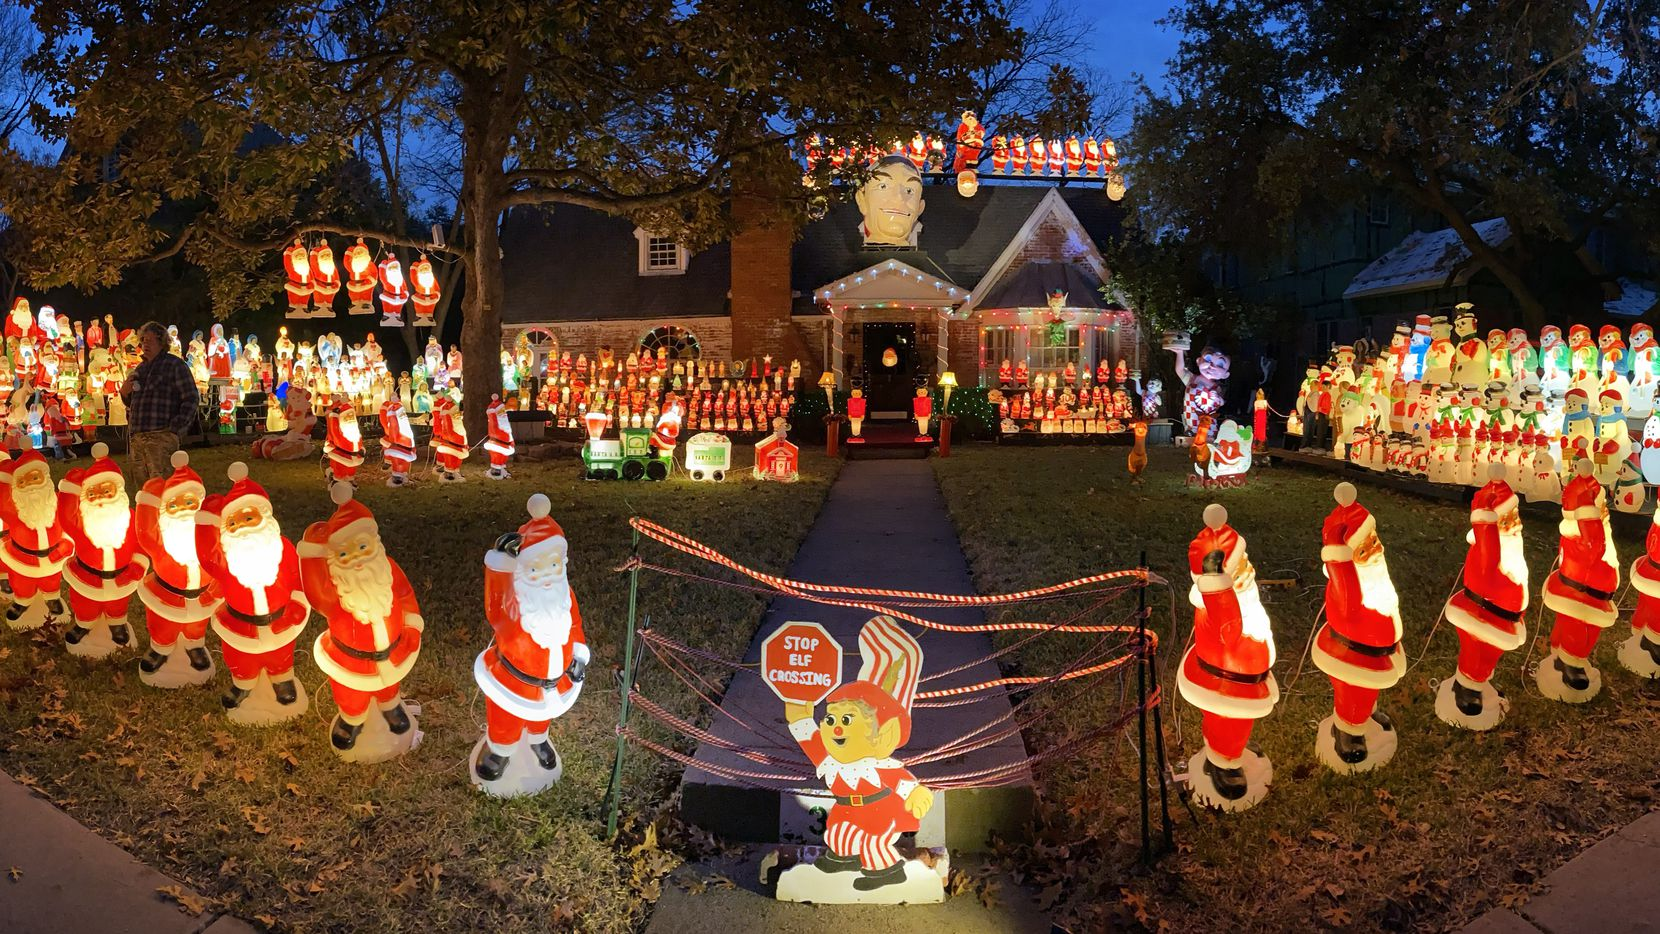 This panoramic view shows the full holiday scene of Wayne Smith's house and yard.